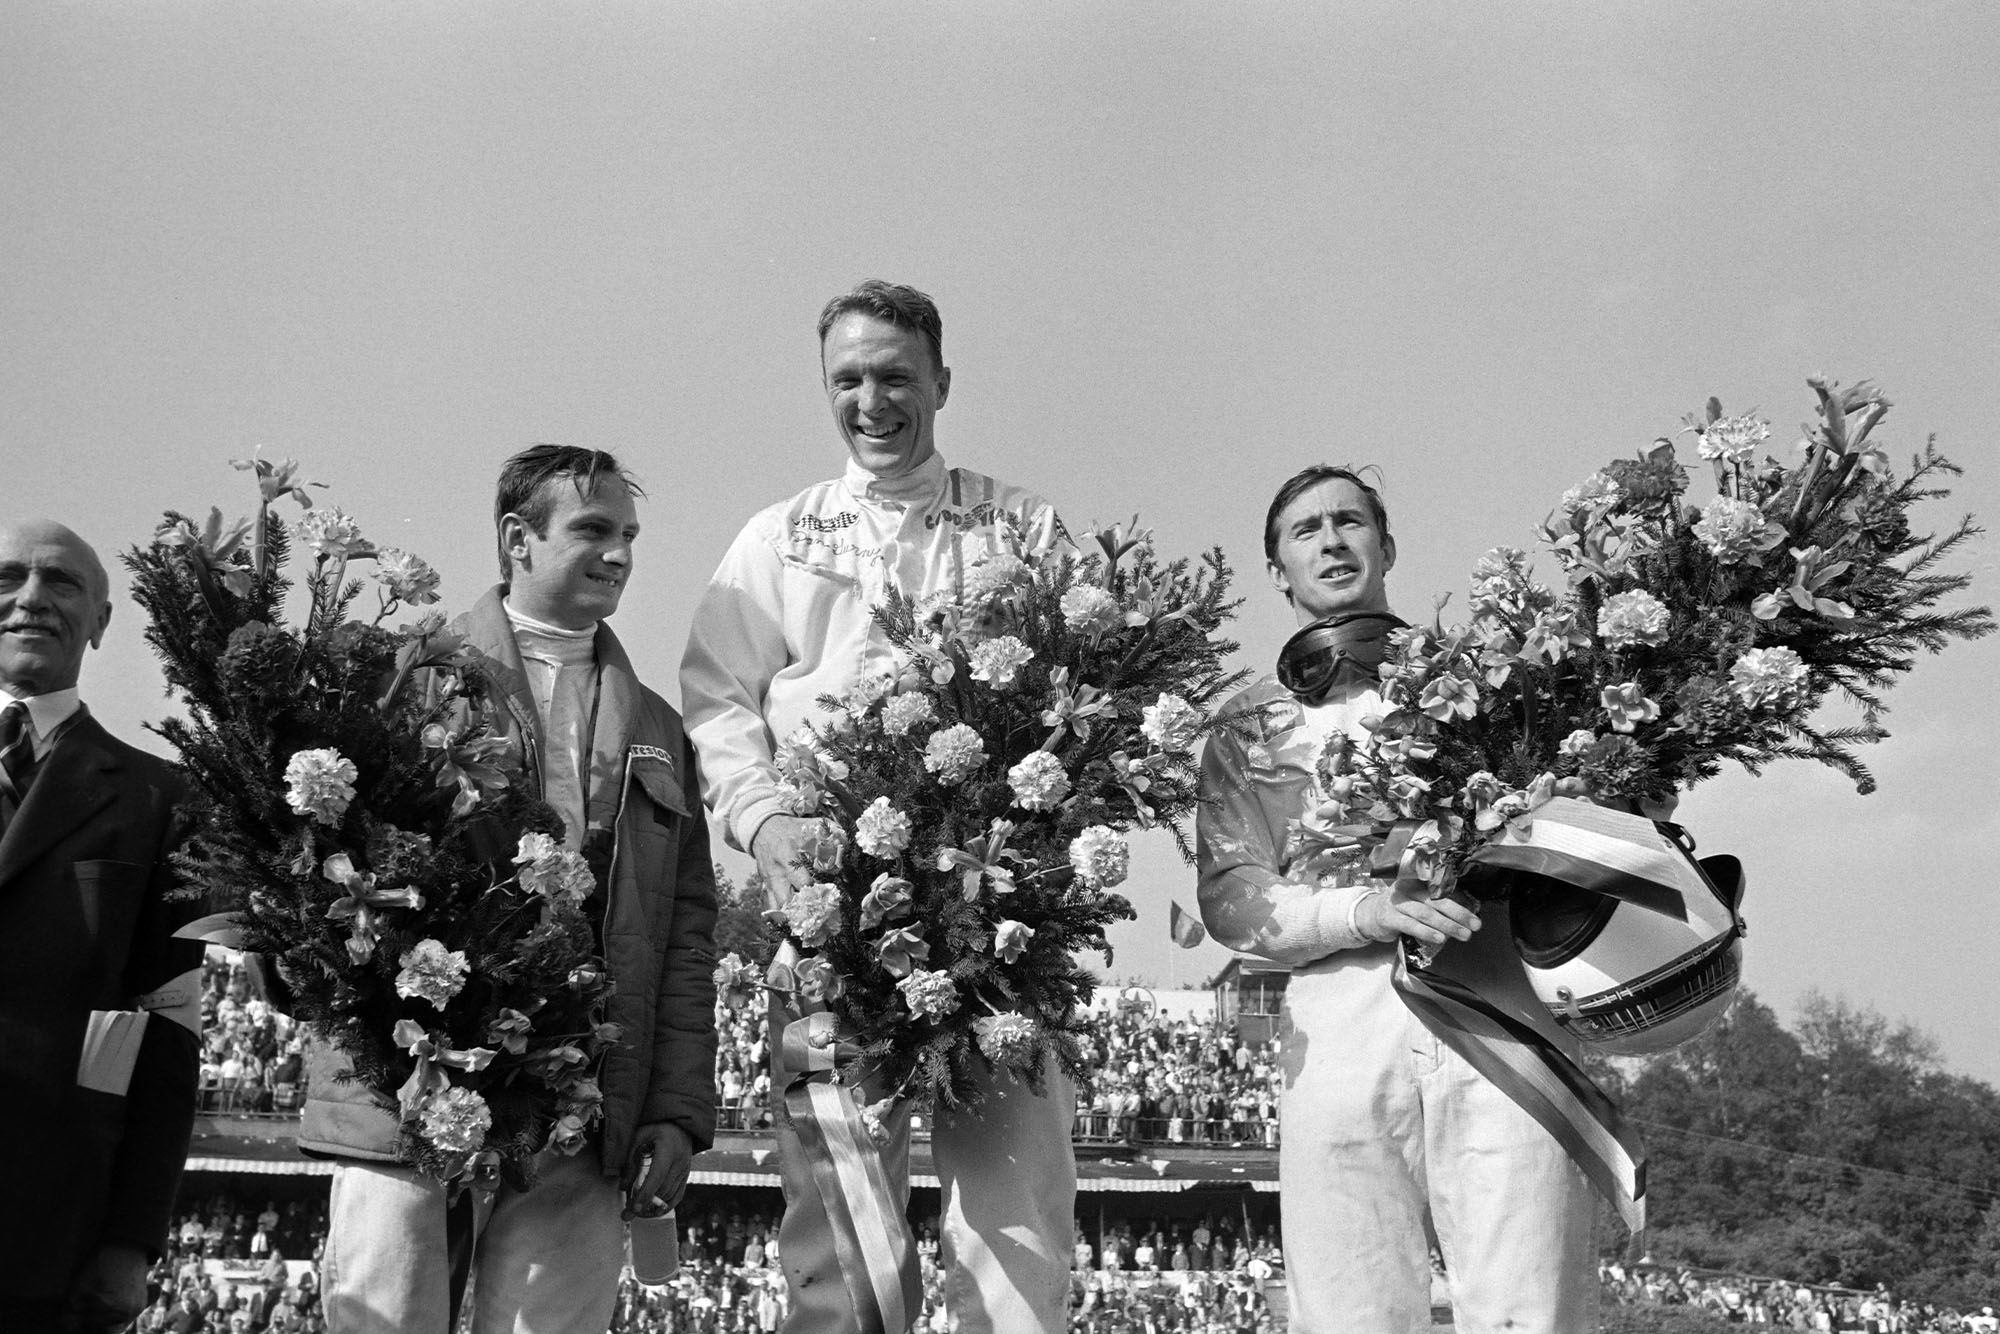 Dan Gurney, 1st position, Jackie Stewart, 2nd position, and Chris Amon, 3rd position, celebrate on the podium.